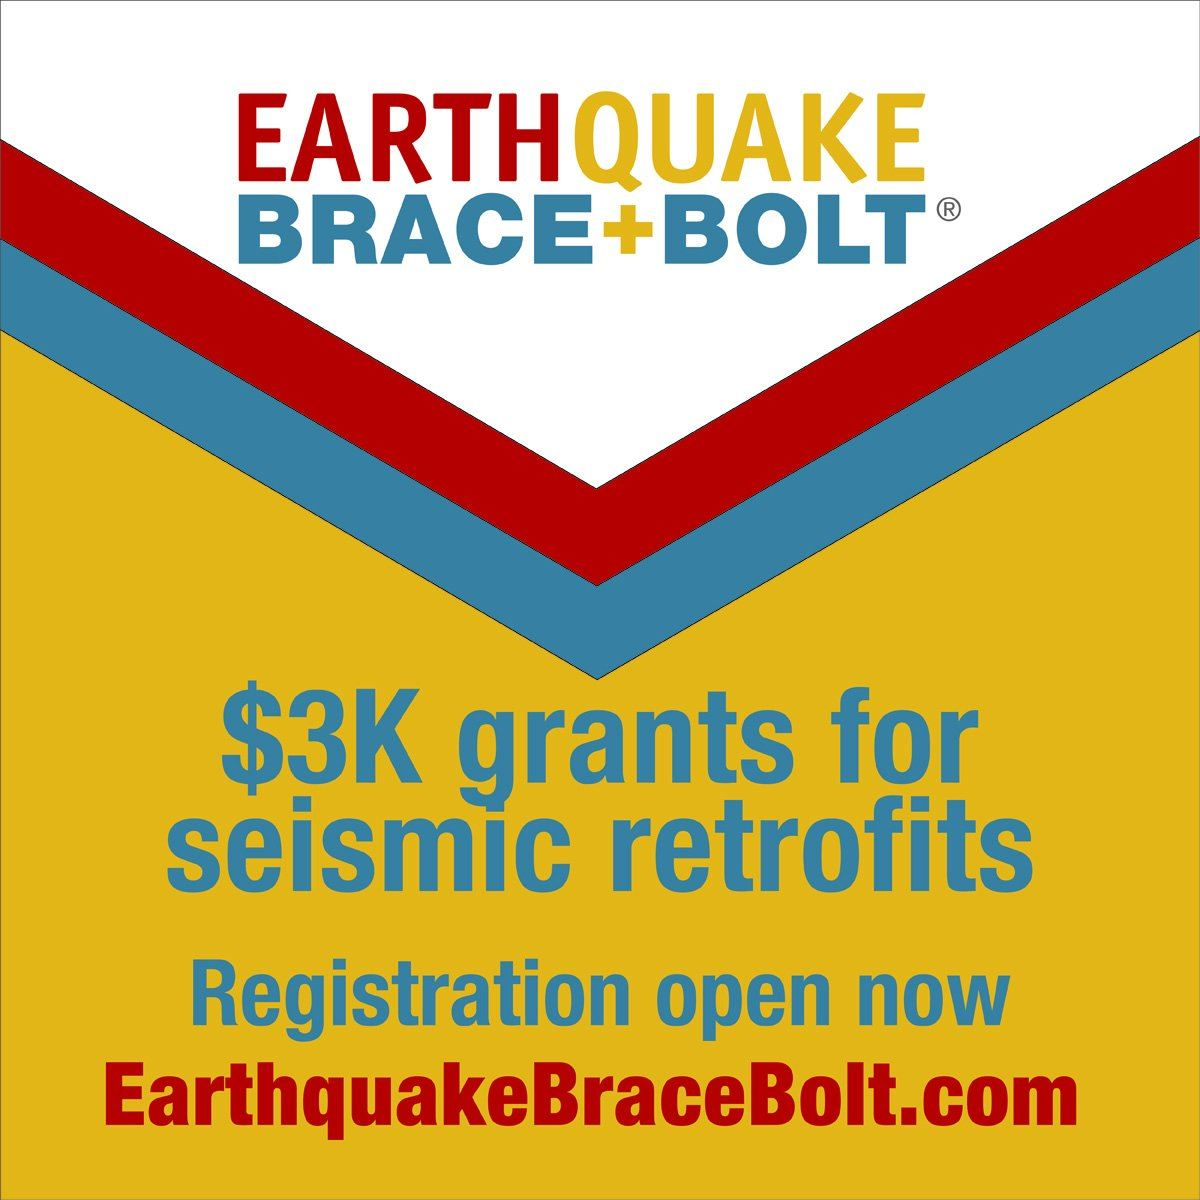 Earthquake Brace and Bolt. Three thousand dollar grants for seismic retrofits. Registration open now